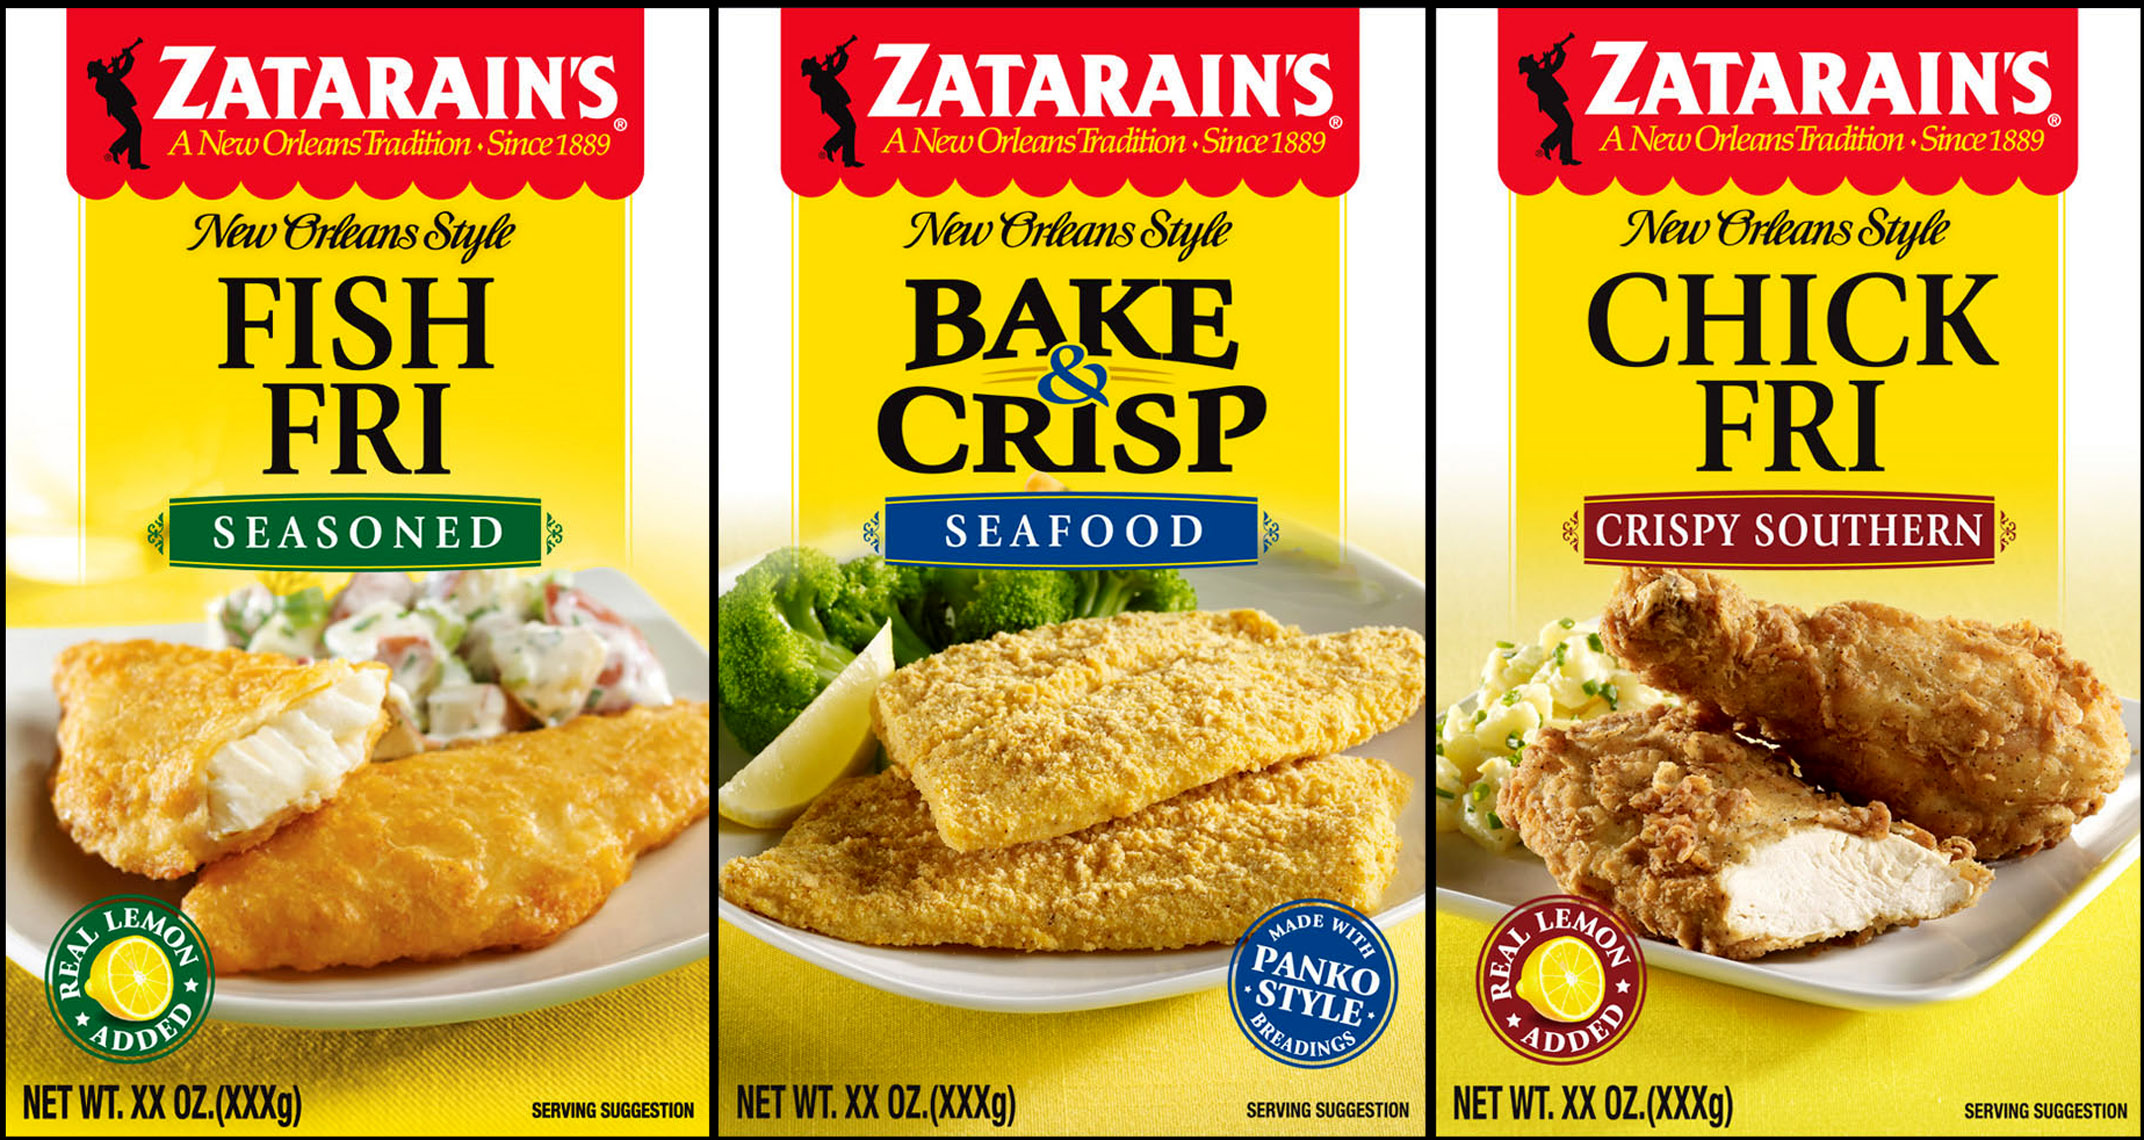 Zatarains_McCormick_Food Packaging  Photography_Food Photography_Fried Food